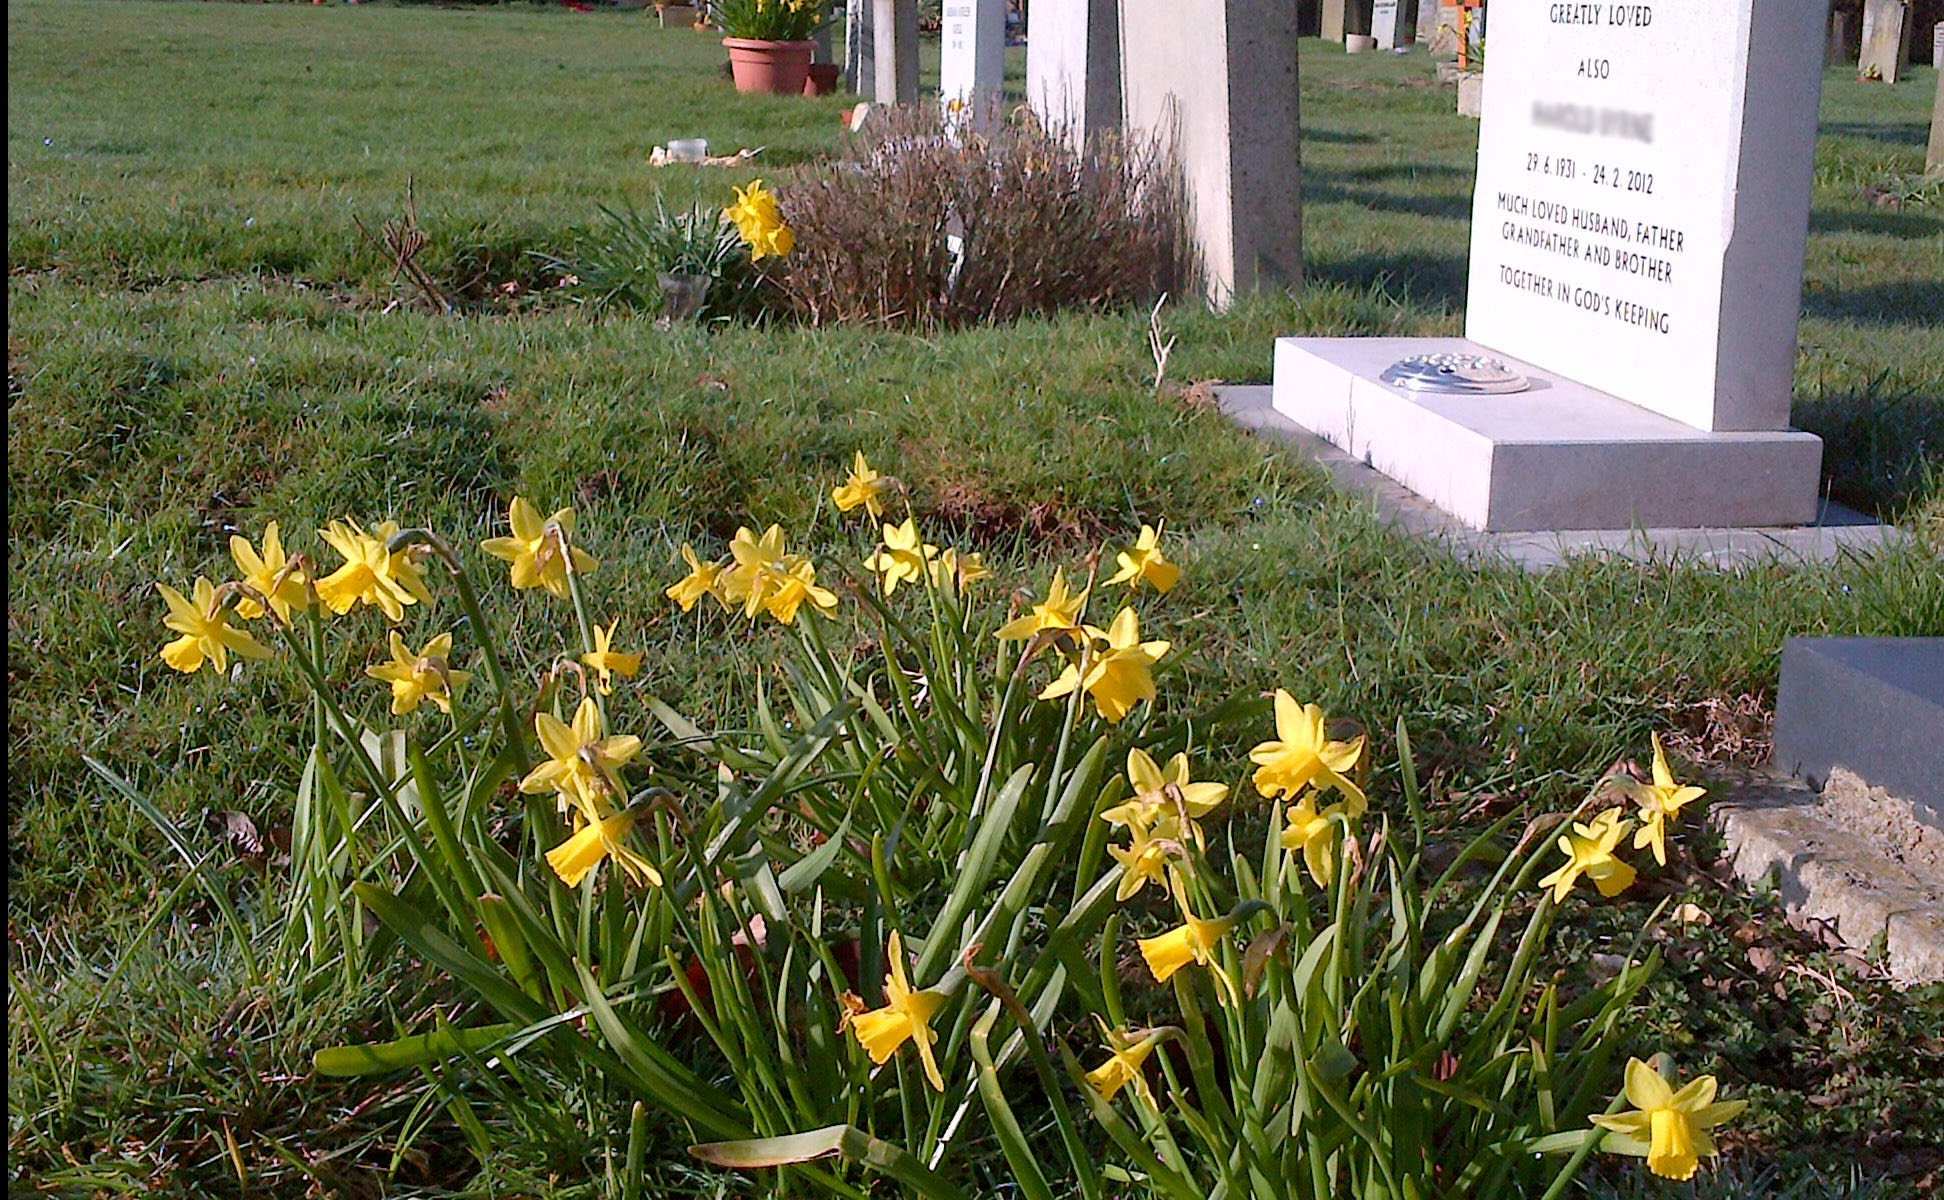 Photo of spring flowers by headstones at Little Gaddesden Church.